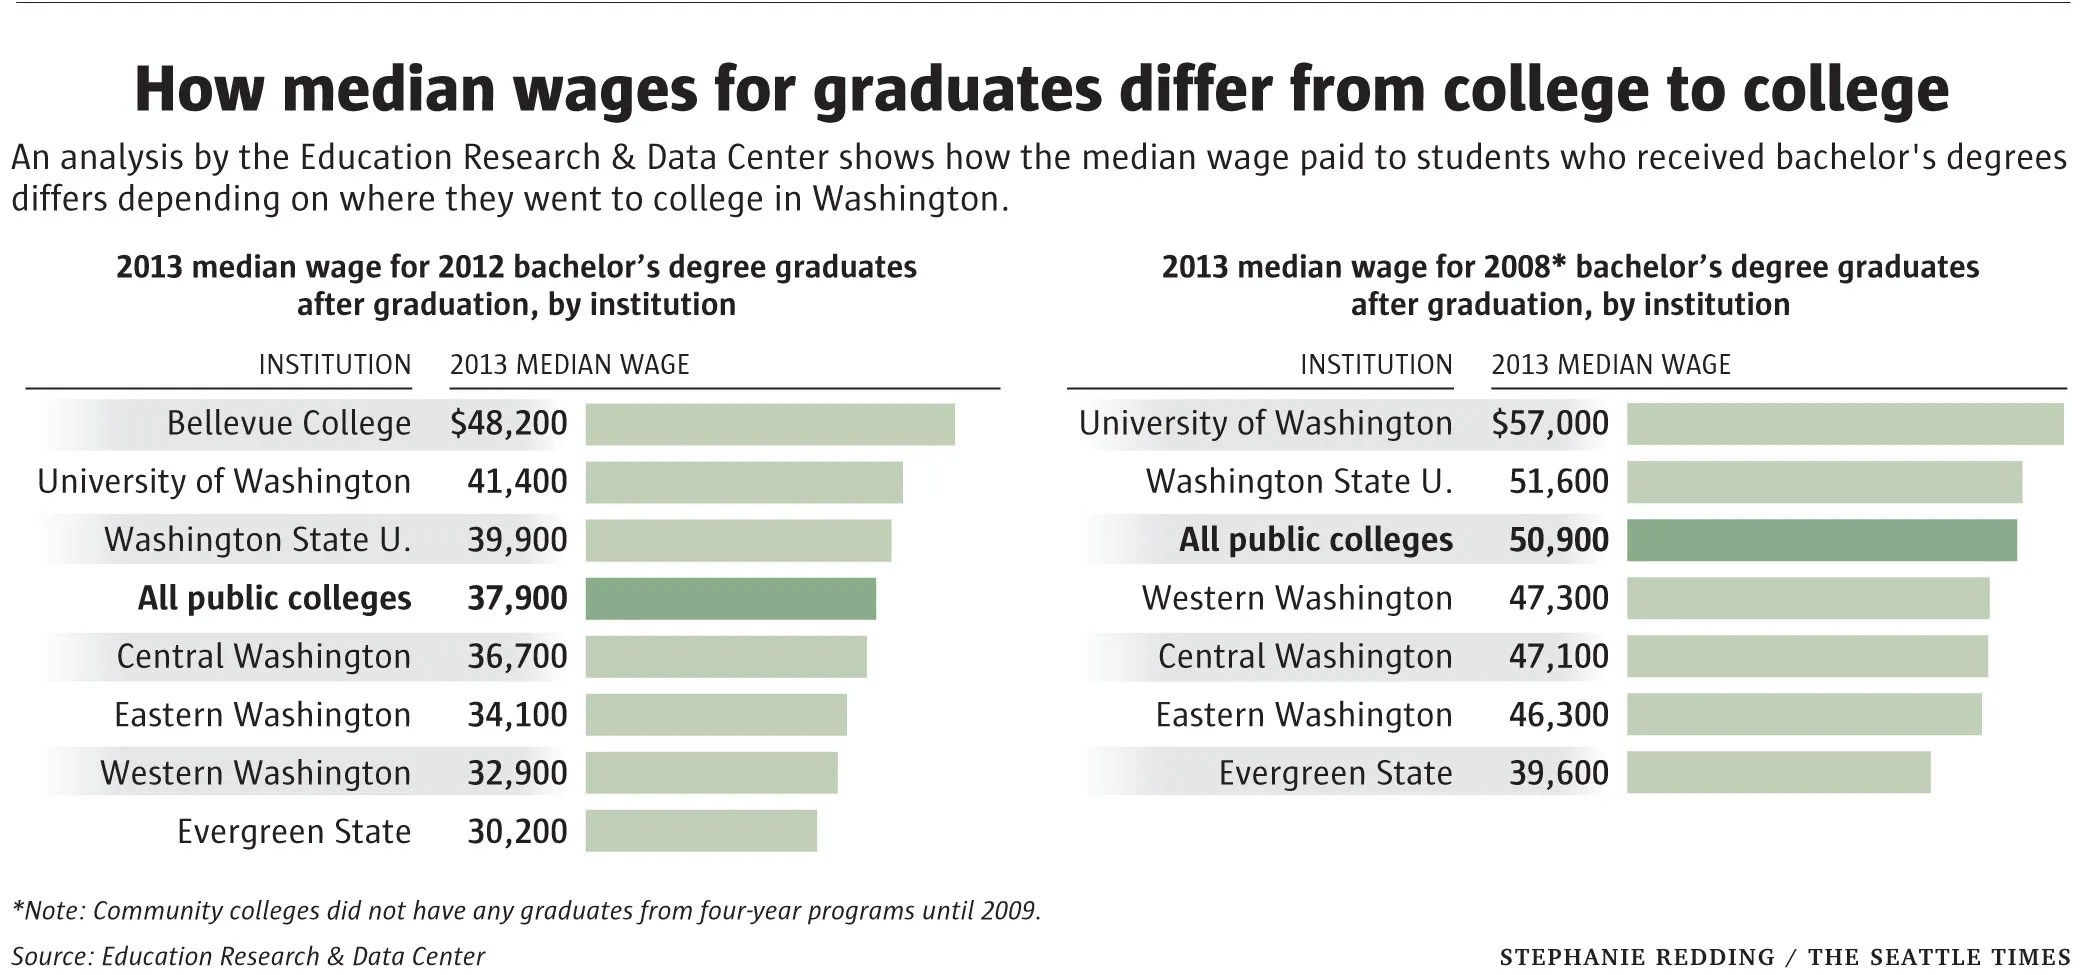 Which College Or University Tops The List Of Median Wages